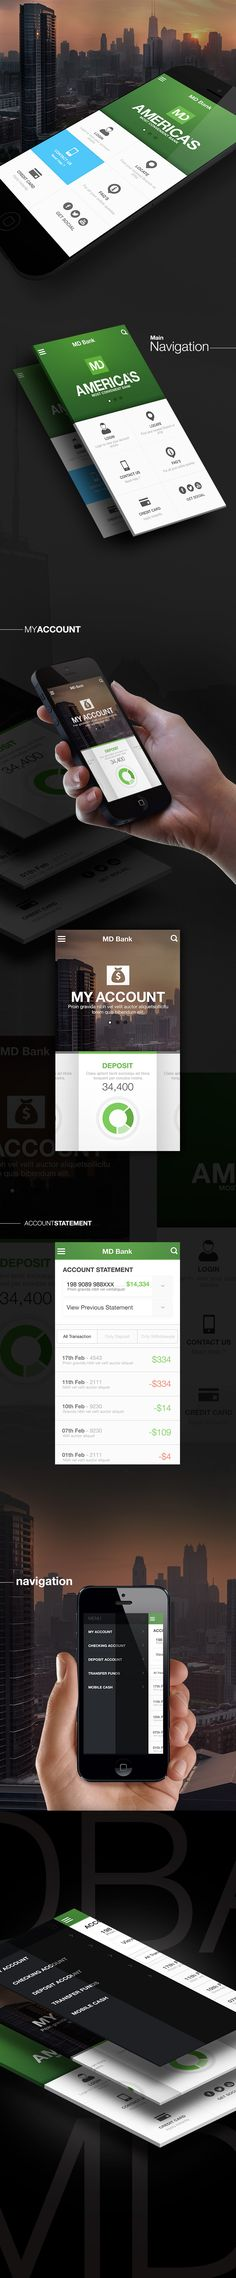 Bank iPhone App